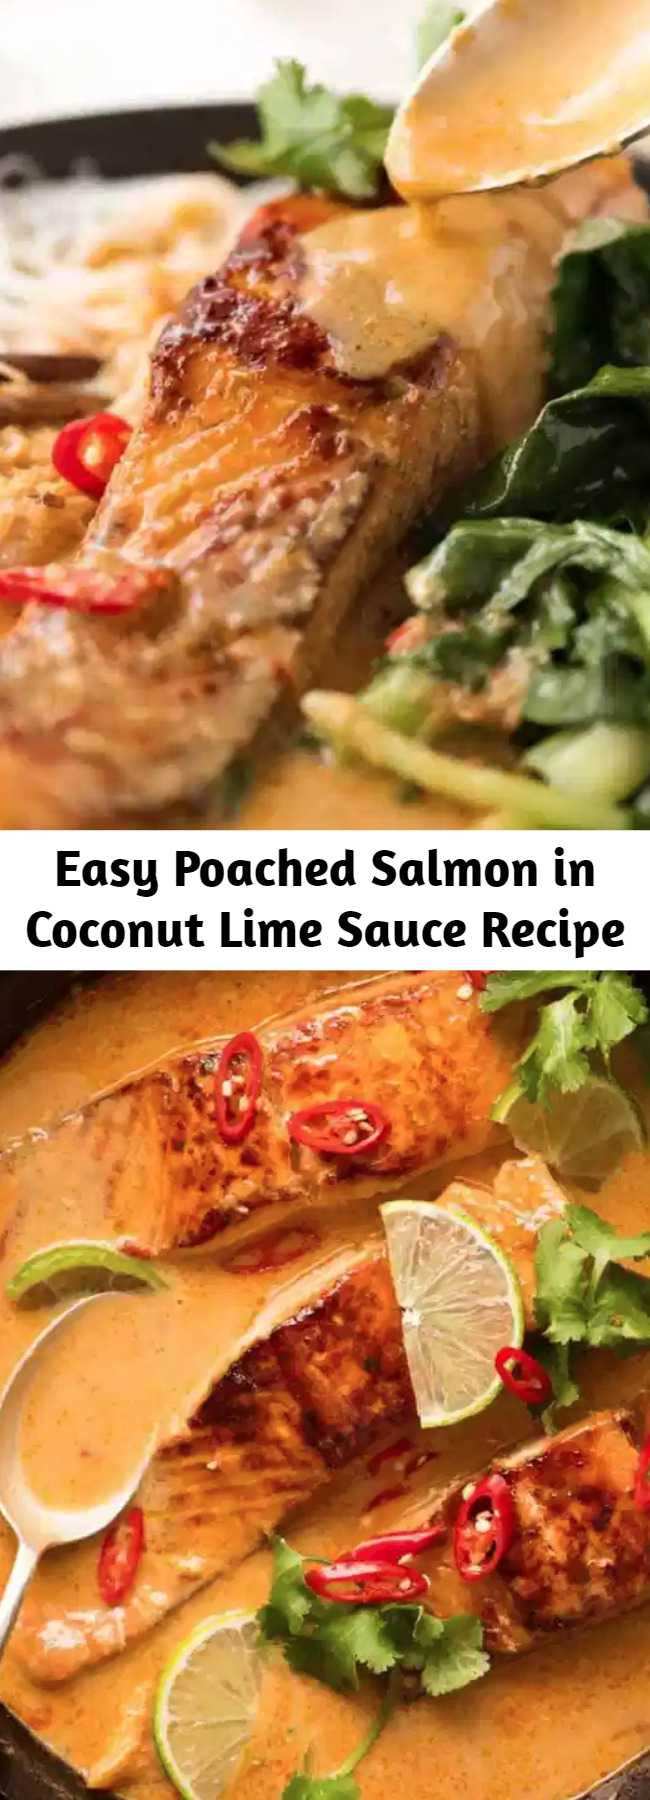 Easy Poached Salmon in Coconut Lime Sauce Recipe - Poached Salmon in a coconut lime sauce that tastes like a Thai coconut curry - except it's super quick and easy to make! Even though the salmon is poached, it's well worth searing lightly to brown for the extra flavour on both the salmon and in the sauce.